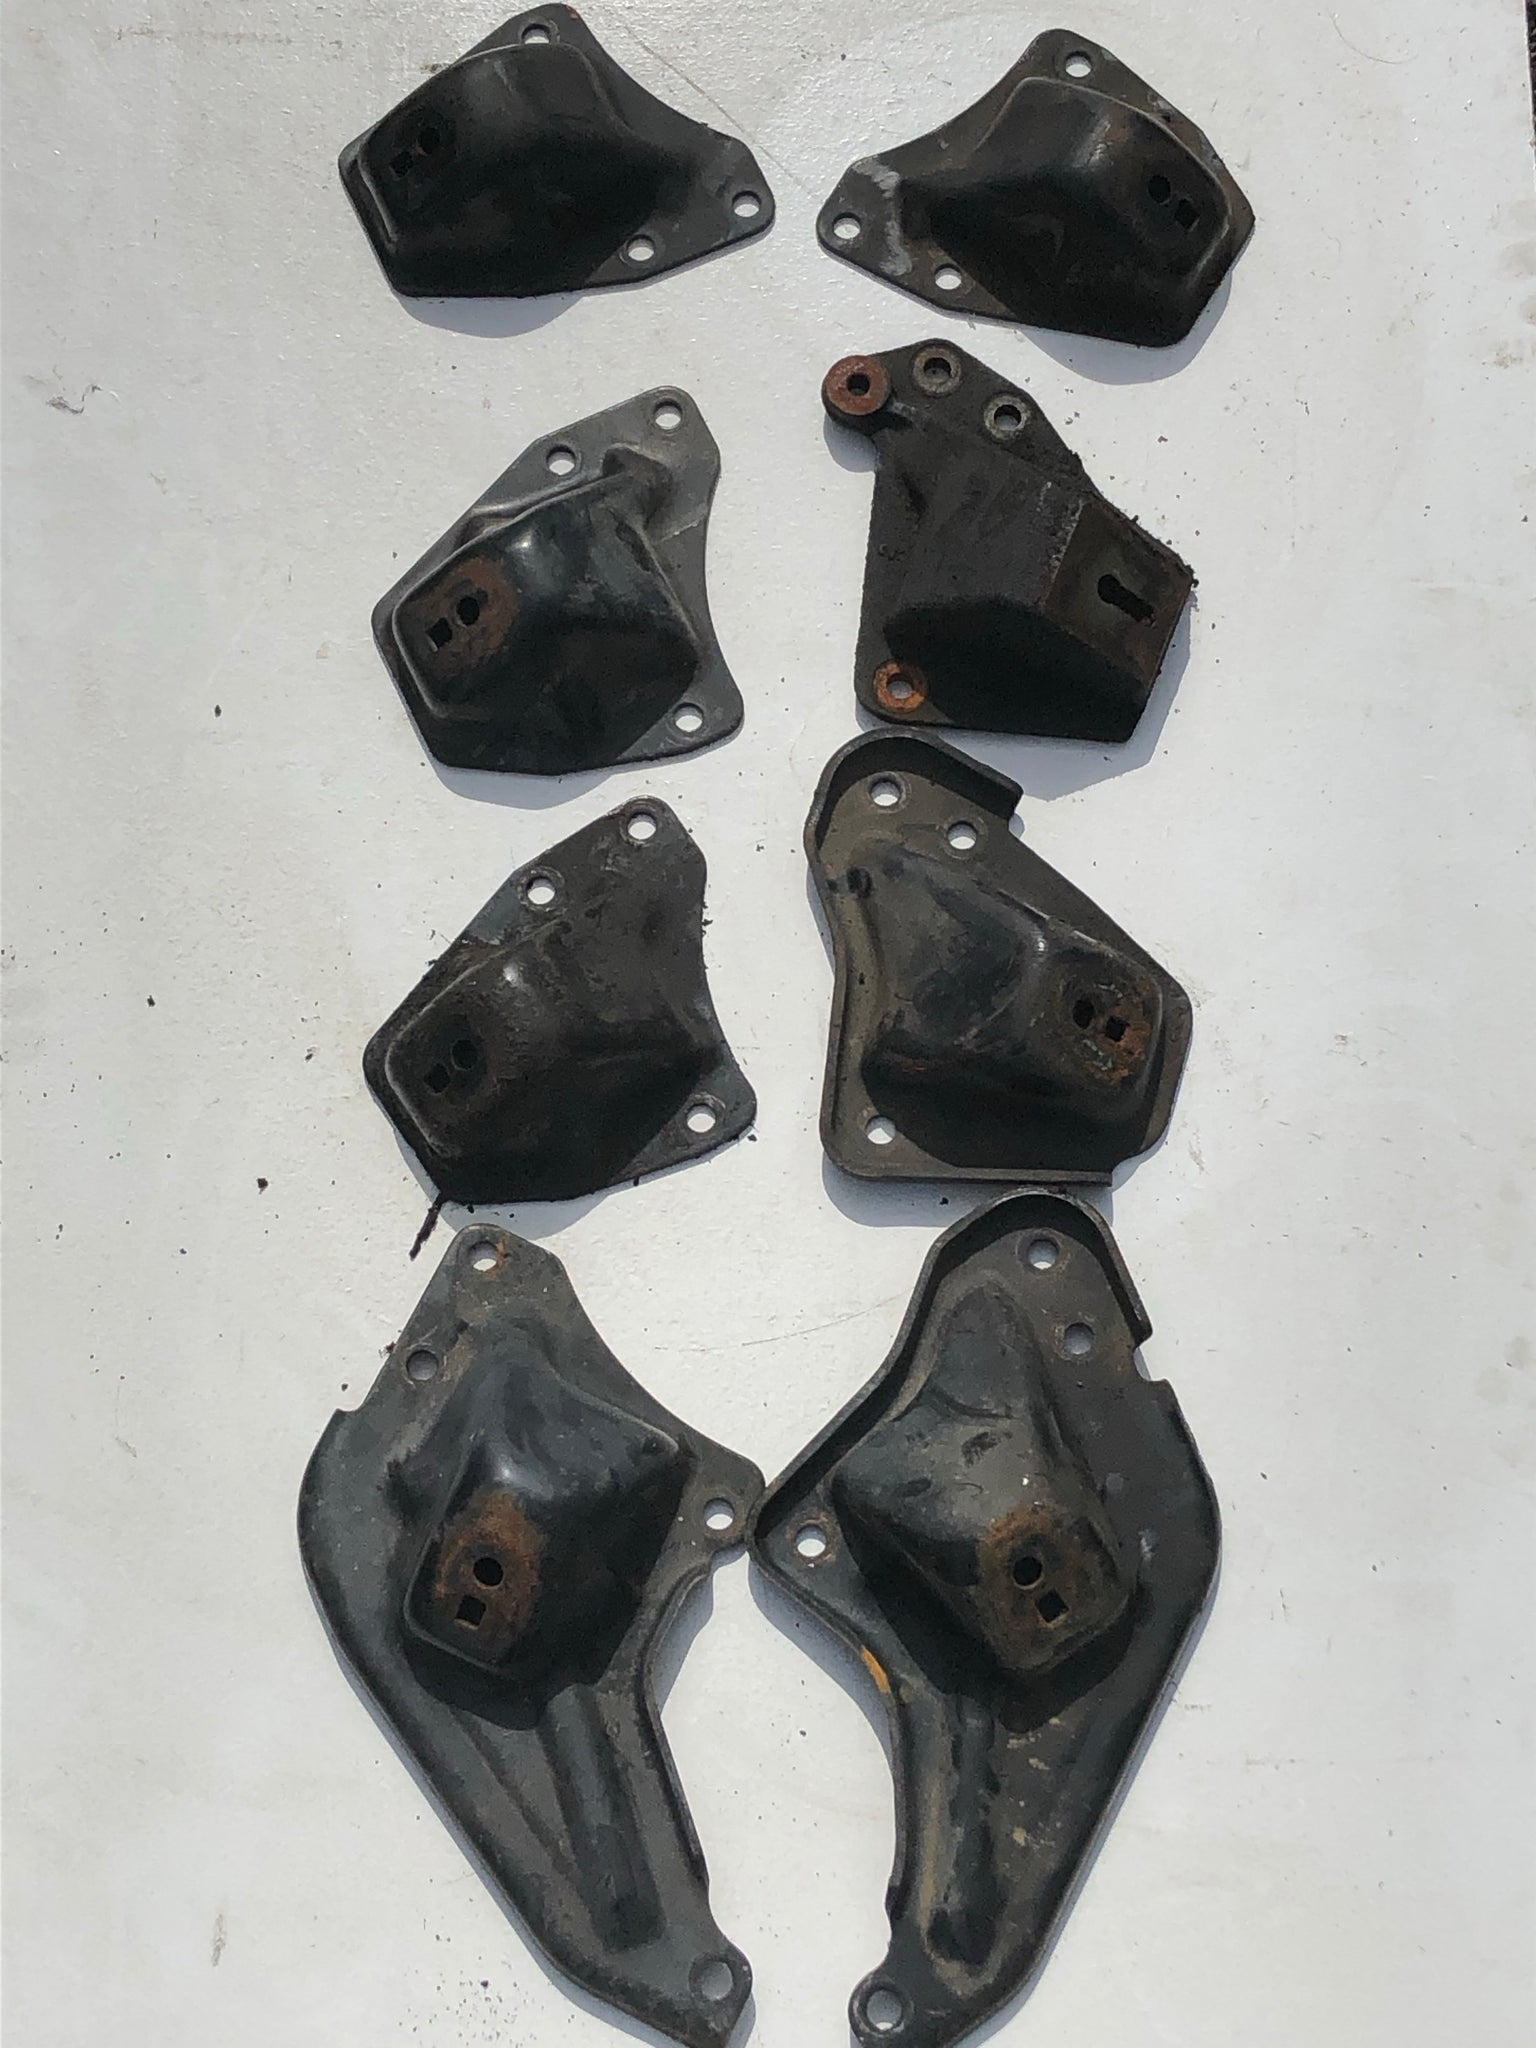 1990-2005 Mazda Miata Motor Mount Bracket Set